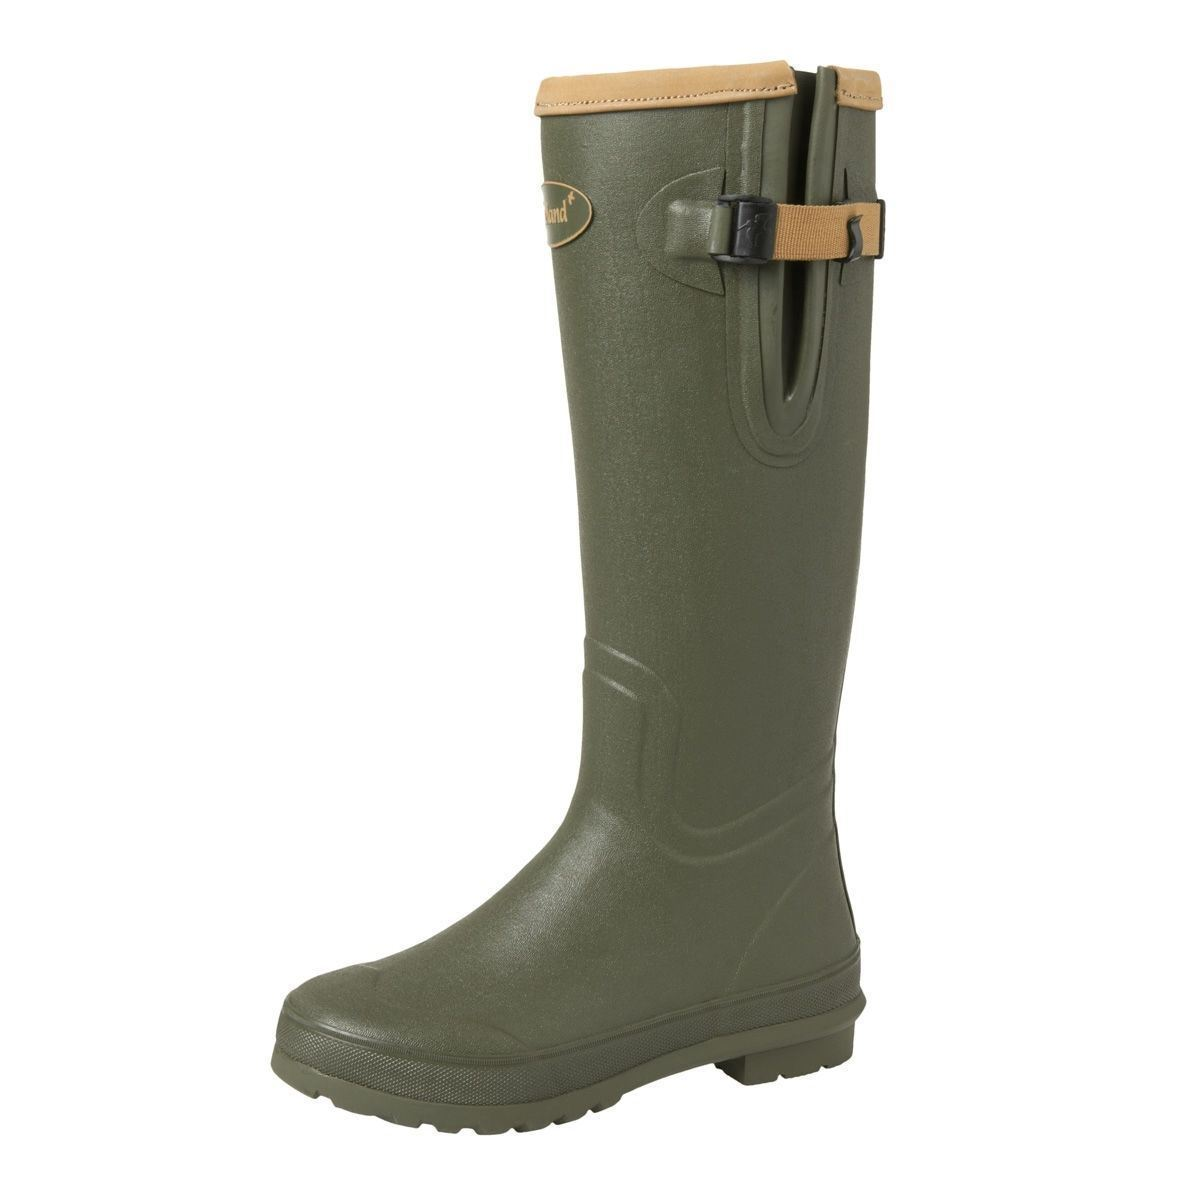 "Seeland CountryLife Lady 16"" CS Wellington Boots - Olive"